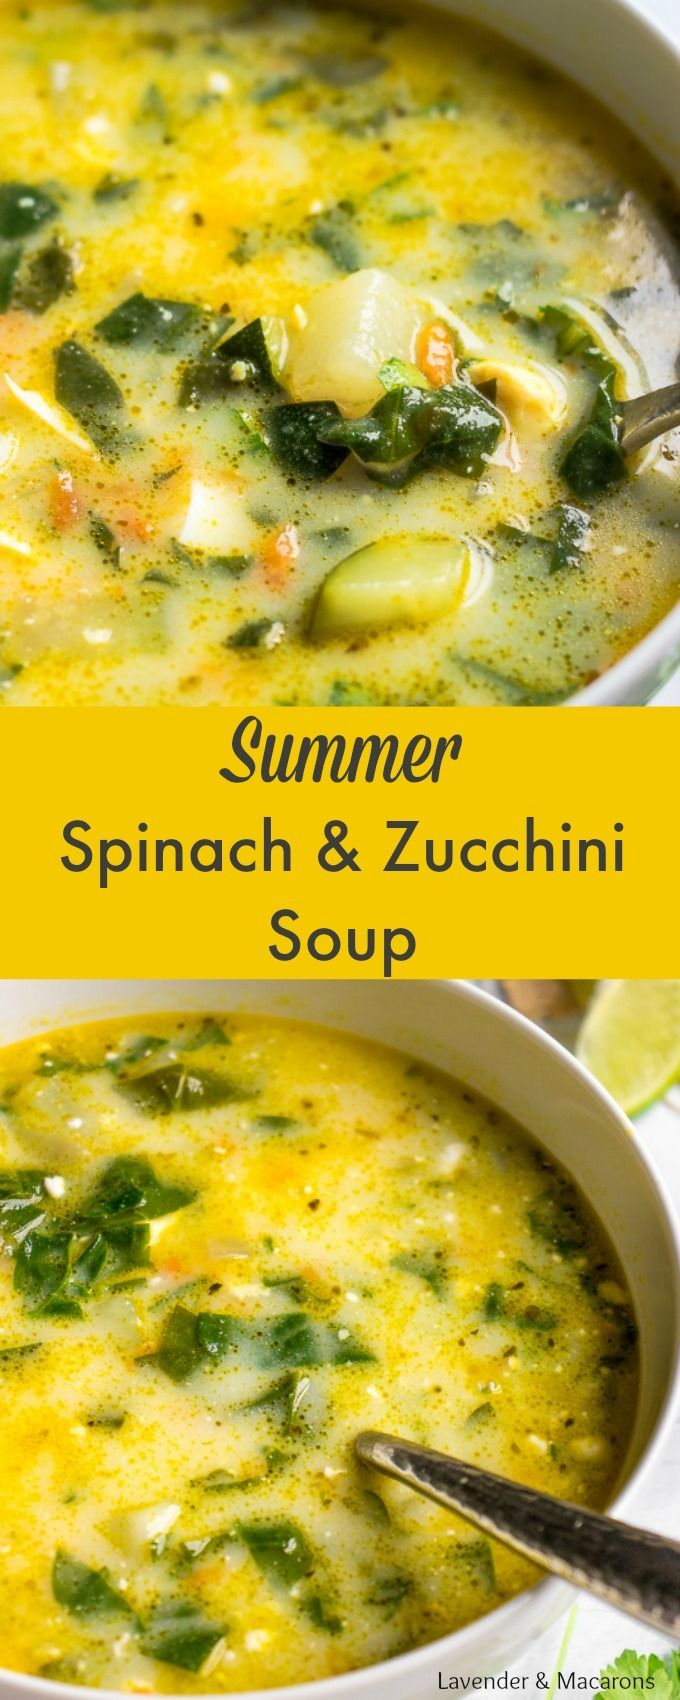 Apr 1, 2020 – This quick and easy Summer Soup with Spinach And Zucchini (also called Green Borscht) is packed with flavo…